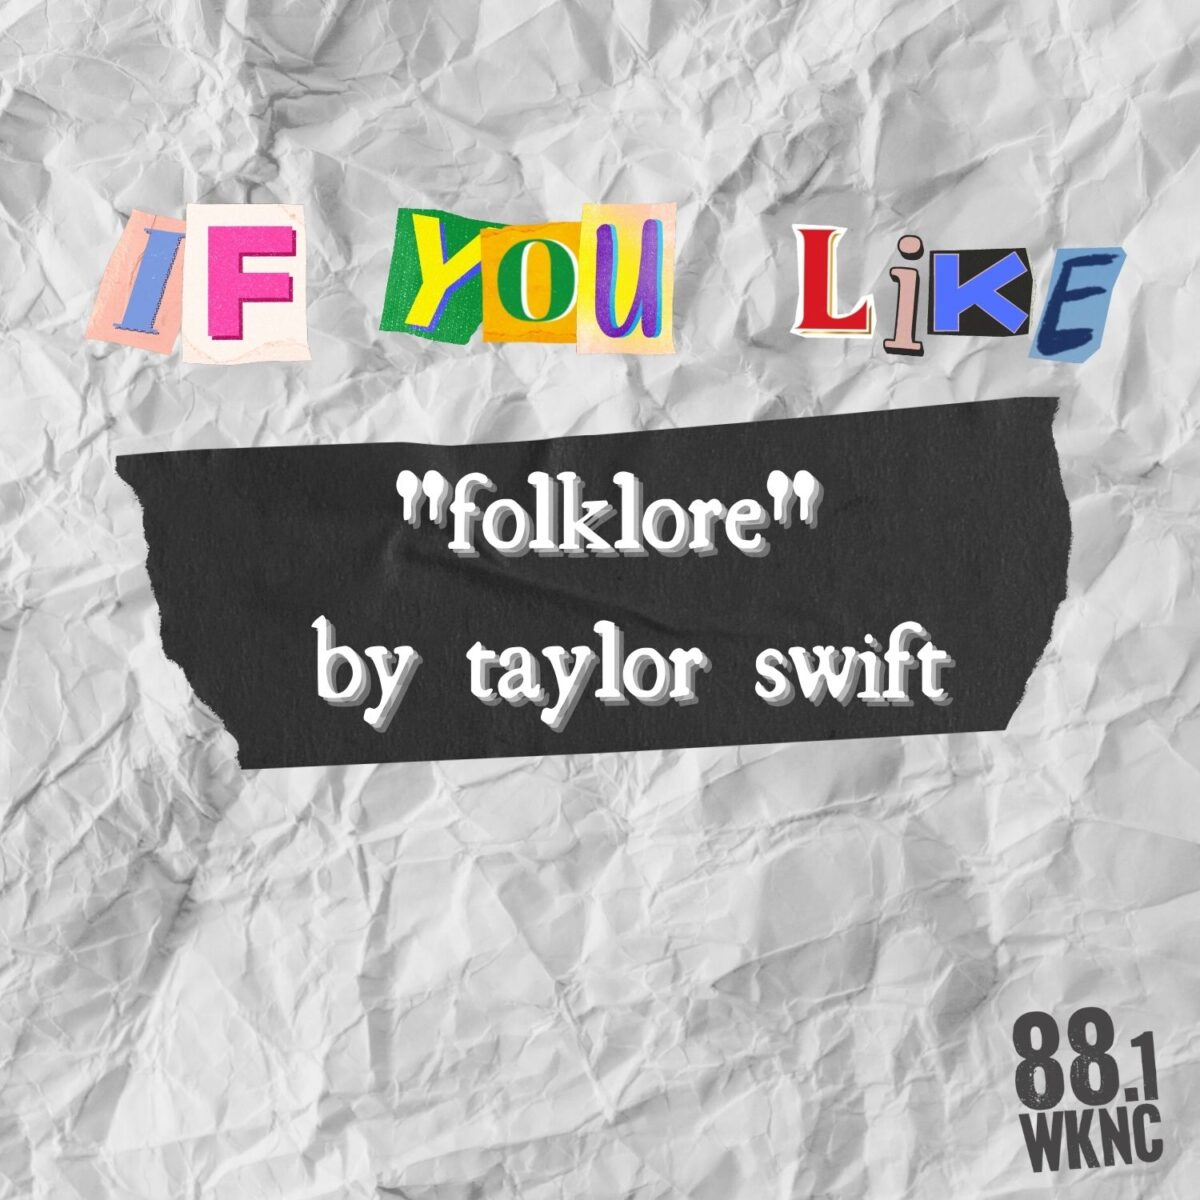 """Crumpled white paper background with black tape in the center. Above the tape there are graphic letters that look as if they were cut out of a magazine spelling out the words """"if you like."""" Atop the tape there is white text that reads """"'folklore' by taylor swift."""" In the bottom right corner there is an """"88.1"""" symbol to represent WKNC."""